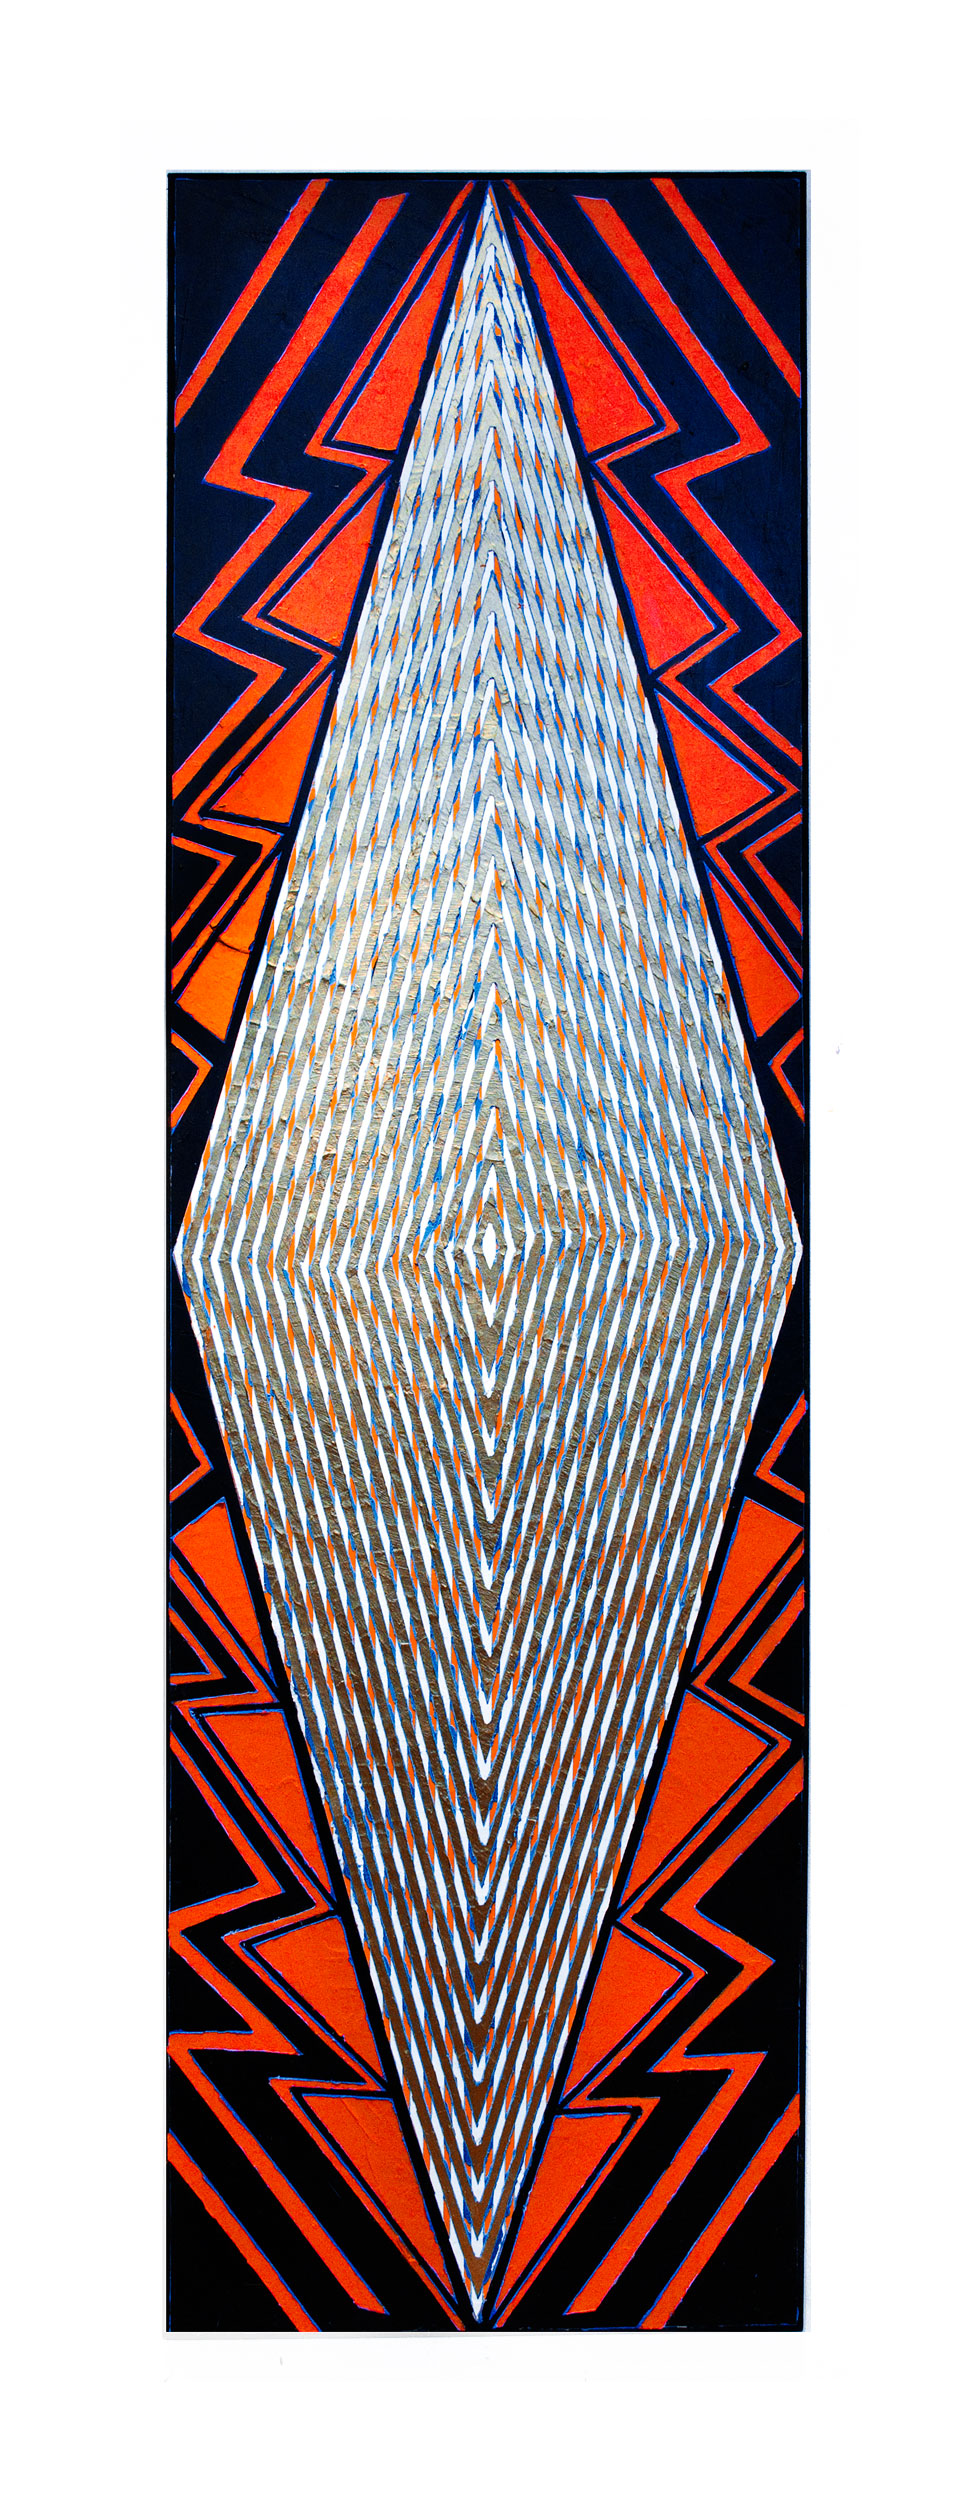 "2015   ""Tall Diamond w. Black & Red (""Brussels"")""  Acrylic on Canvas    84H x 24W"